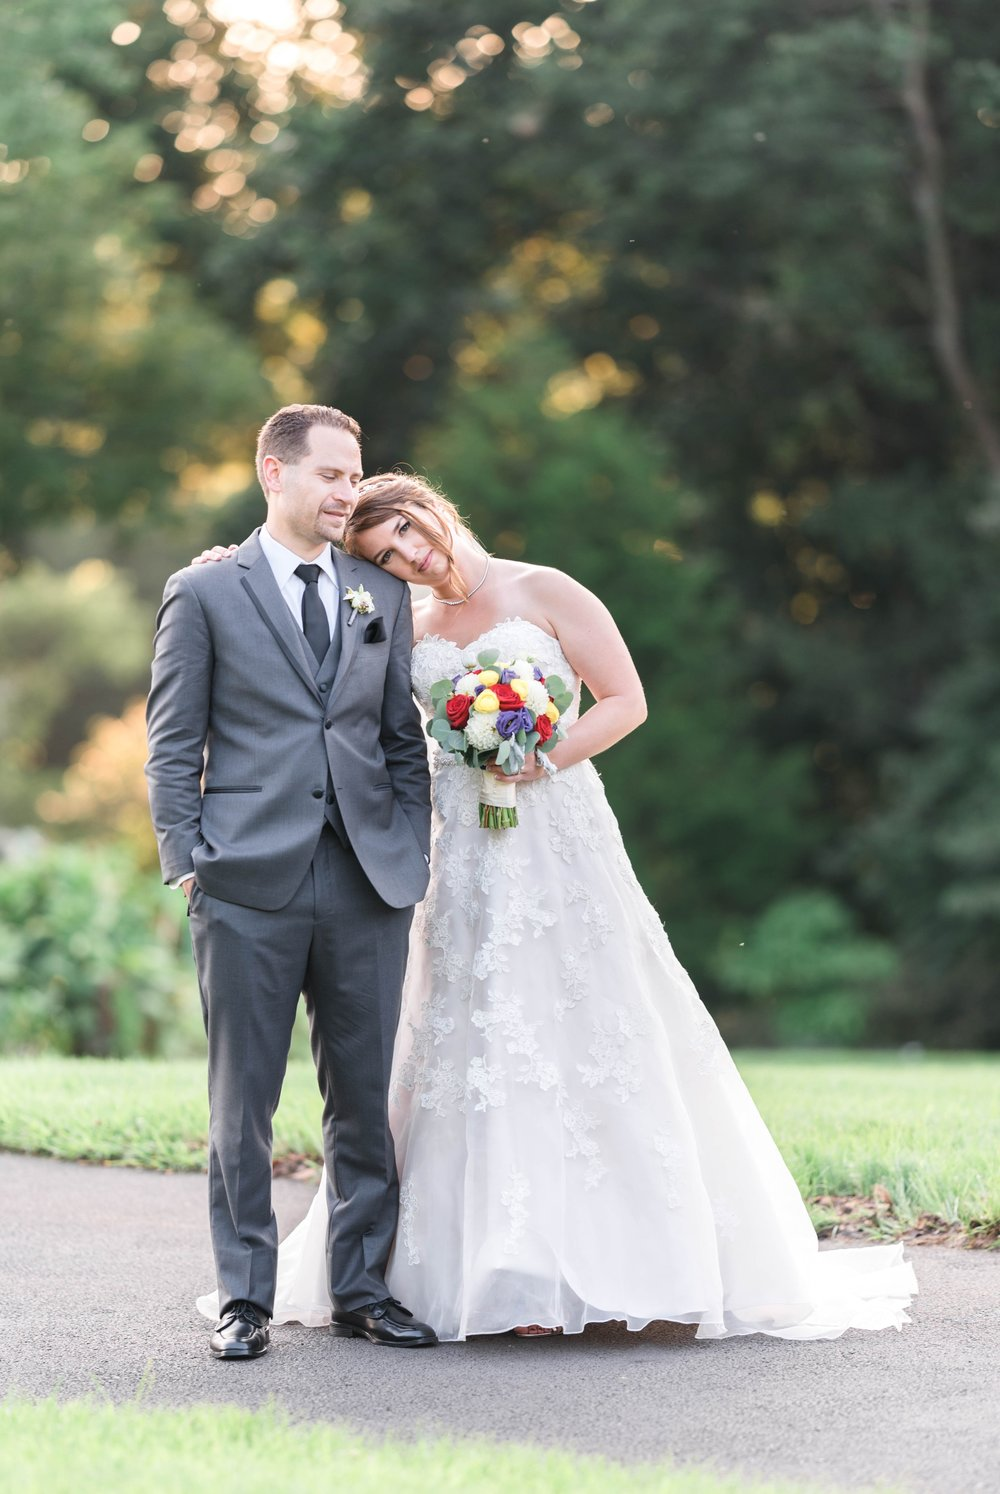 TheAtriumatMeadowlark_Virginiawedding photographer_lynchburgweddingphotographer_DCweddingPhotographer_KristinAaron 38.jpg